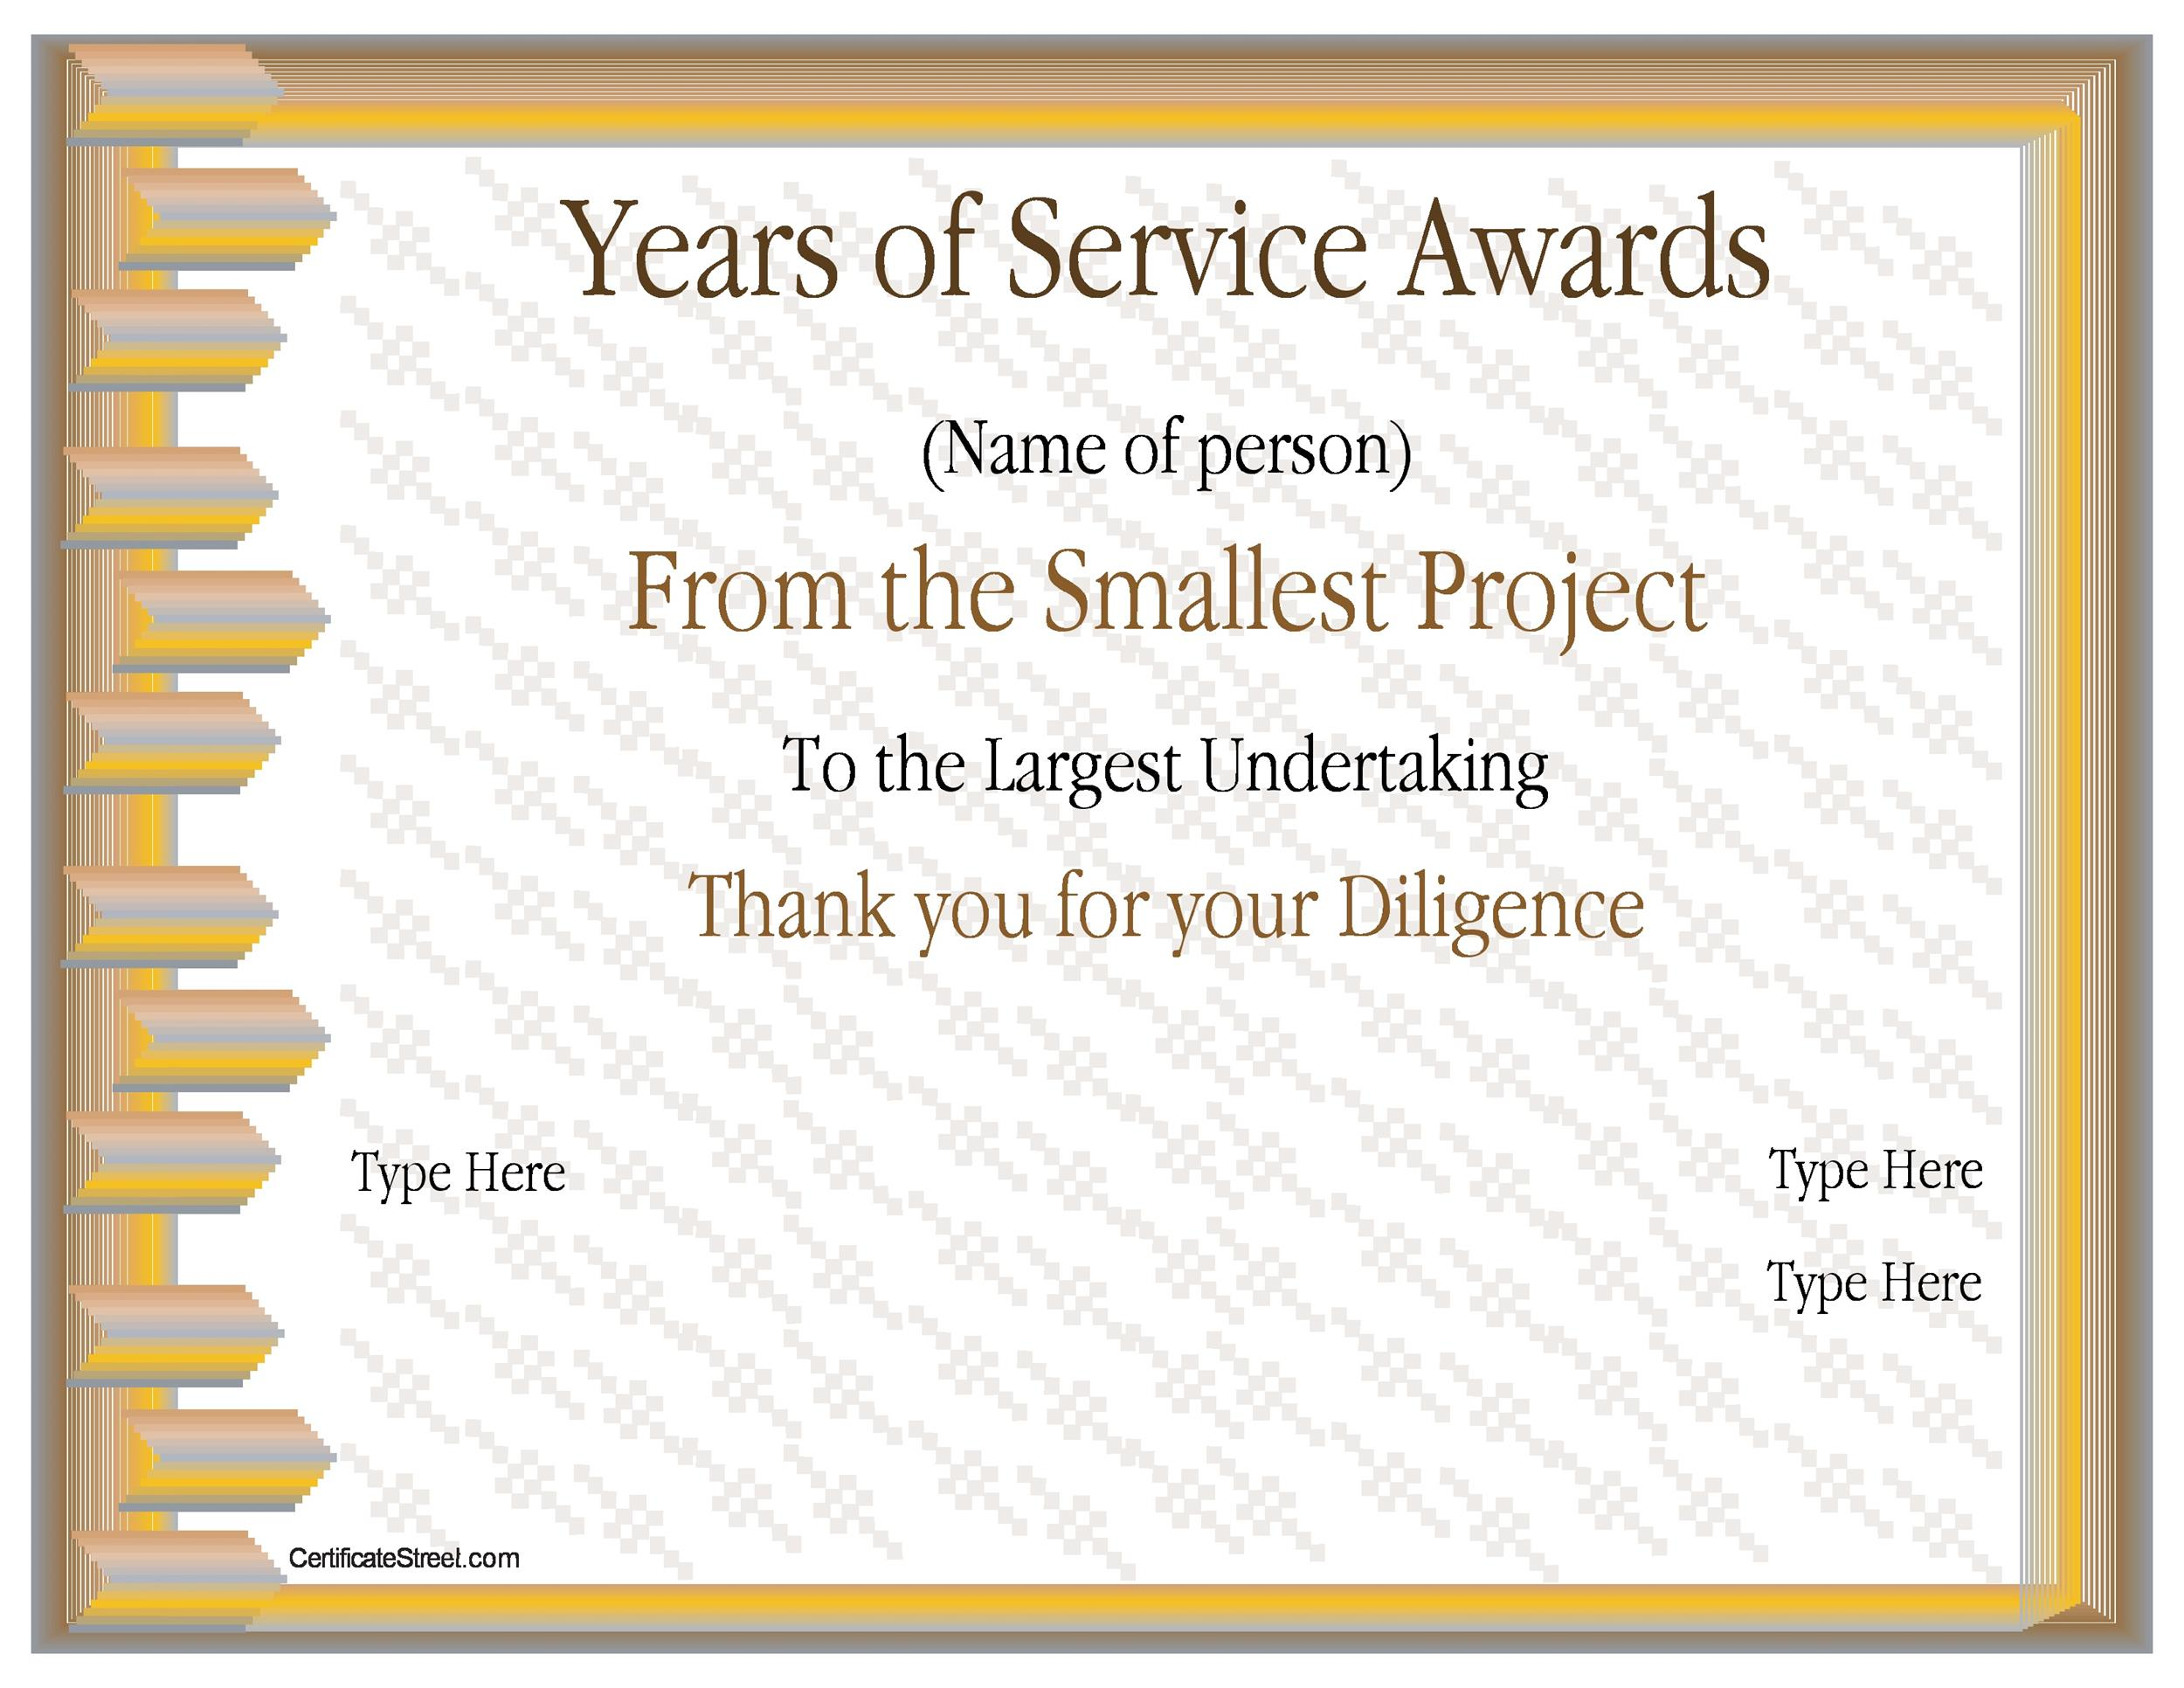 50 Amazing Award Certificate Templates ᐅ Template Lab